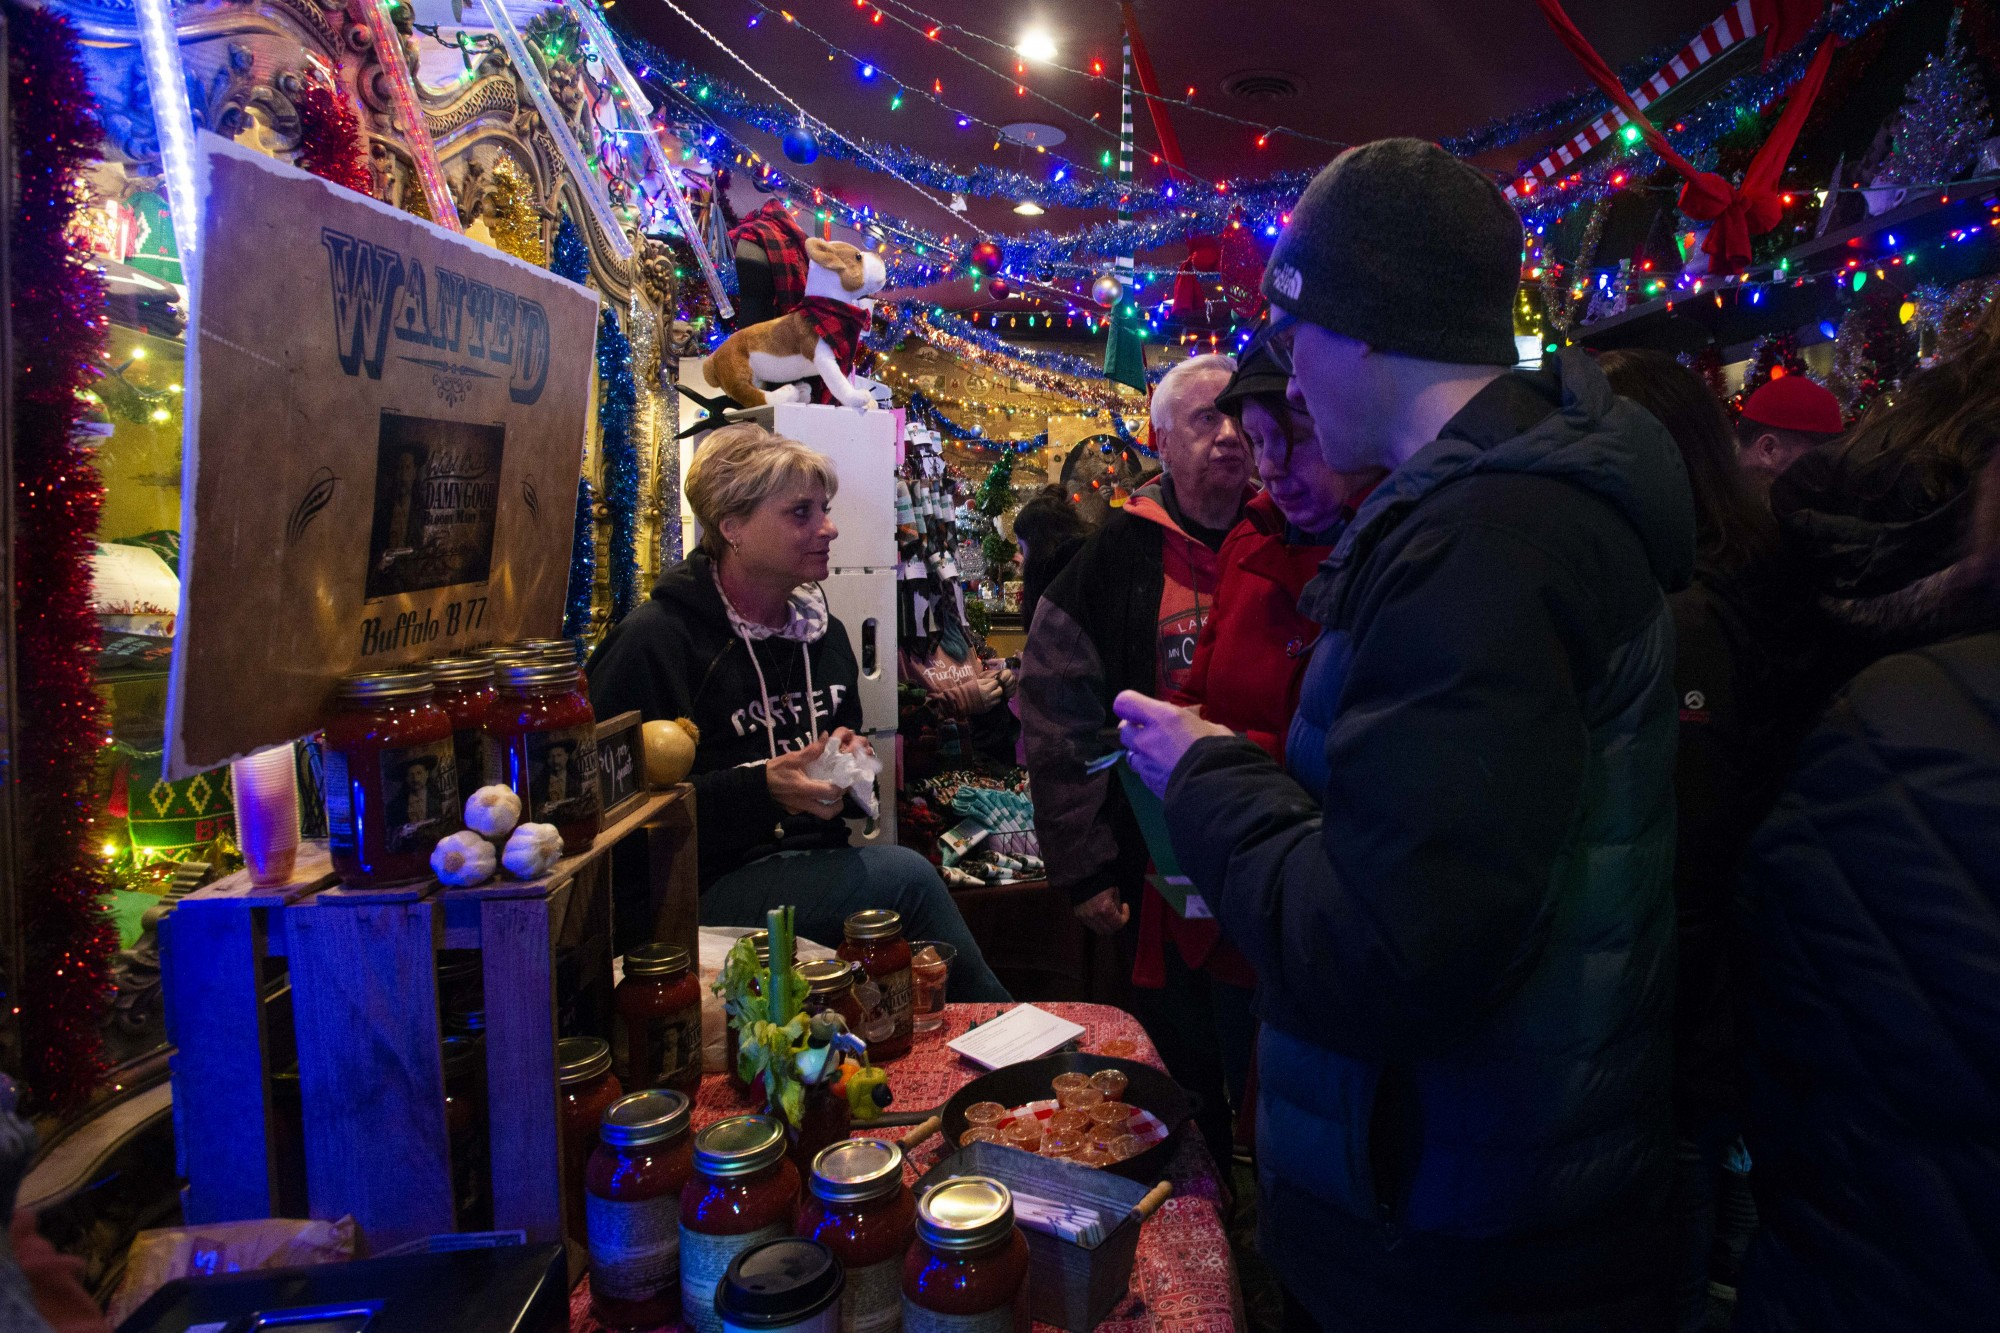 A visitor tastes a sample of the Bloody Mary mix being sold by Mary Johnson (left) at Betty Danger's Country Club in North-east Minneapolis on Saturday, Dec. 7. The club held its 4th Annual Betty's Bizarre Bazaar which is an event for local artists to sell their art and homemade food supplies.